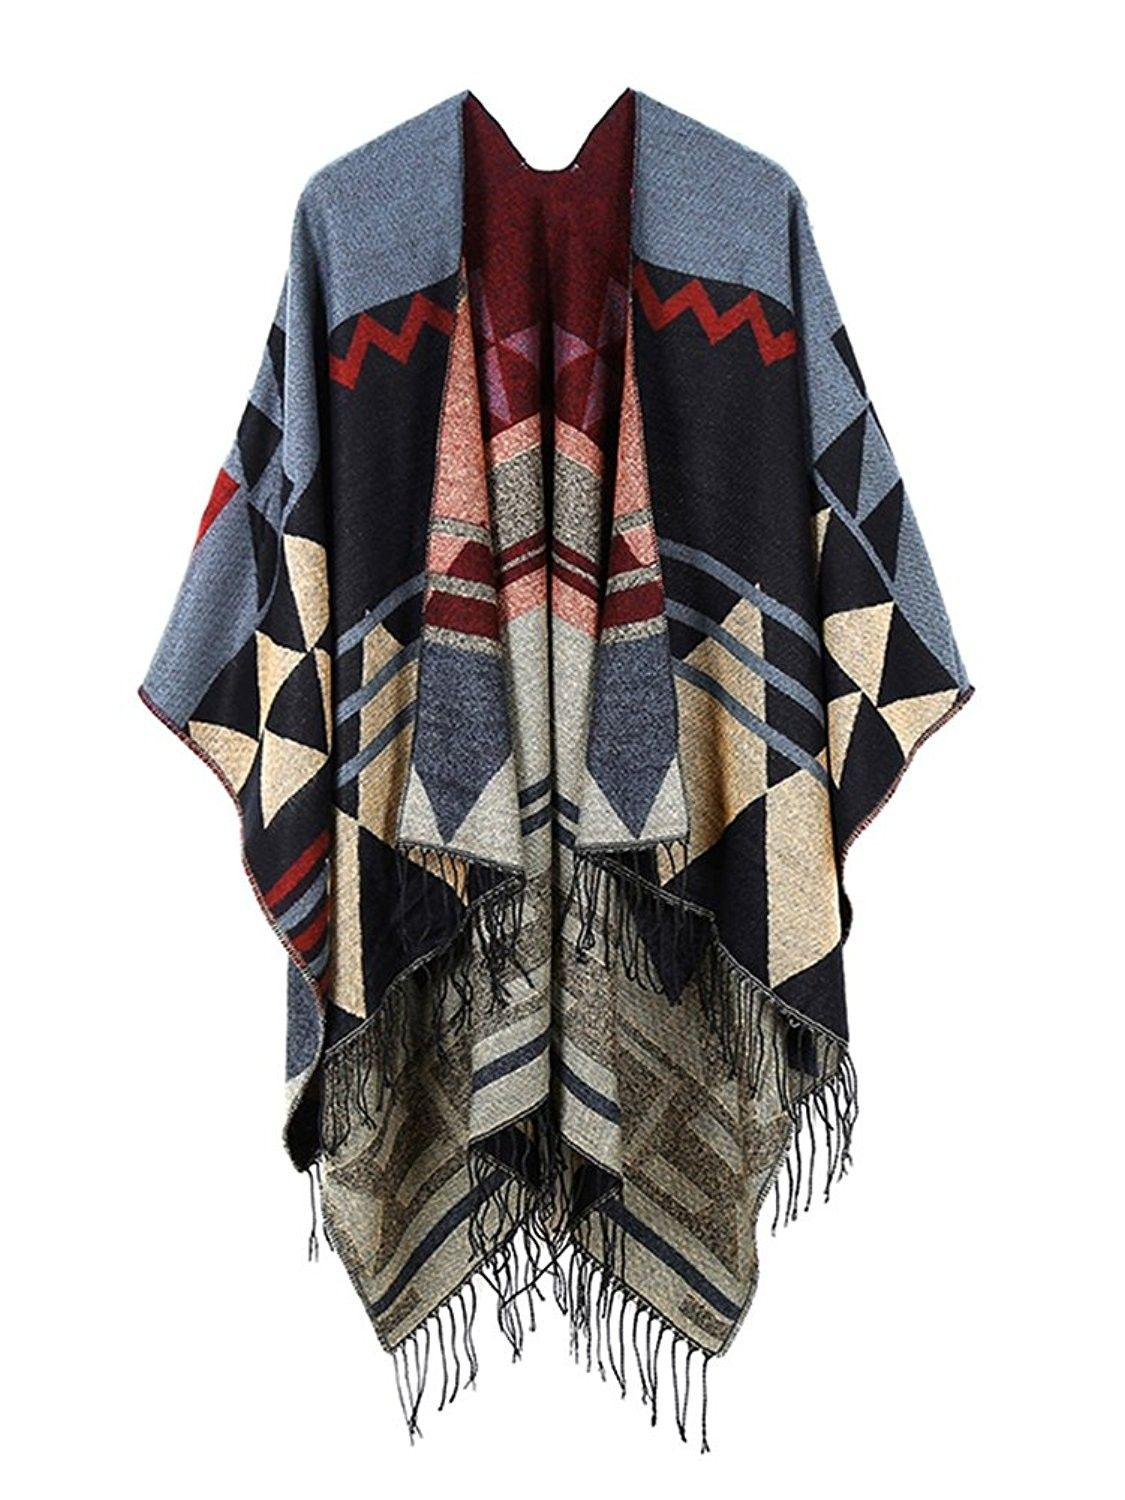 24cb8f258 Women's Print Wool Pashmina Shawl Blanket Cape Poncho Sweater - Wine Red  (Fast Ship) - CQ12MMWO3I5 - Scarves & Wraps, Cold Weather Scarves & Wraps  #SCARVES ...